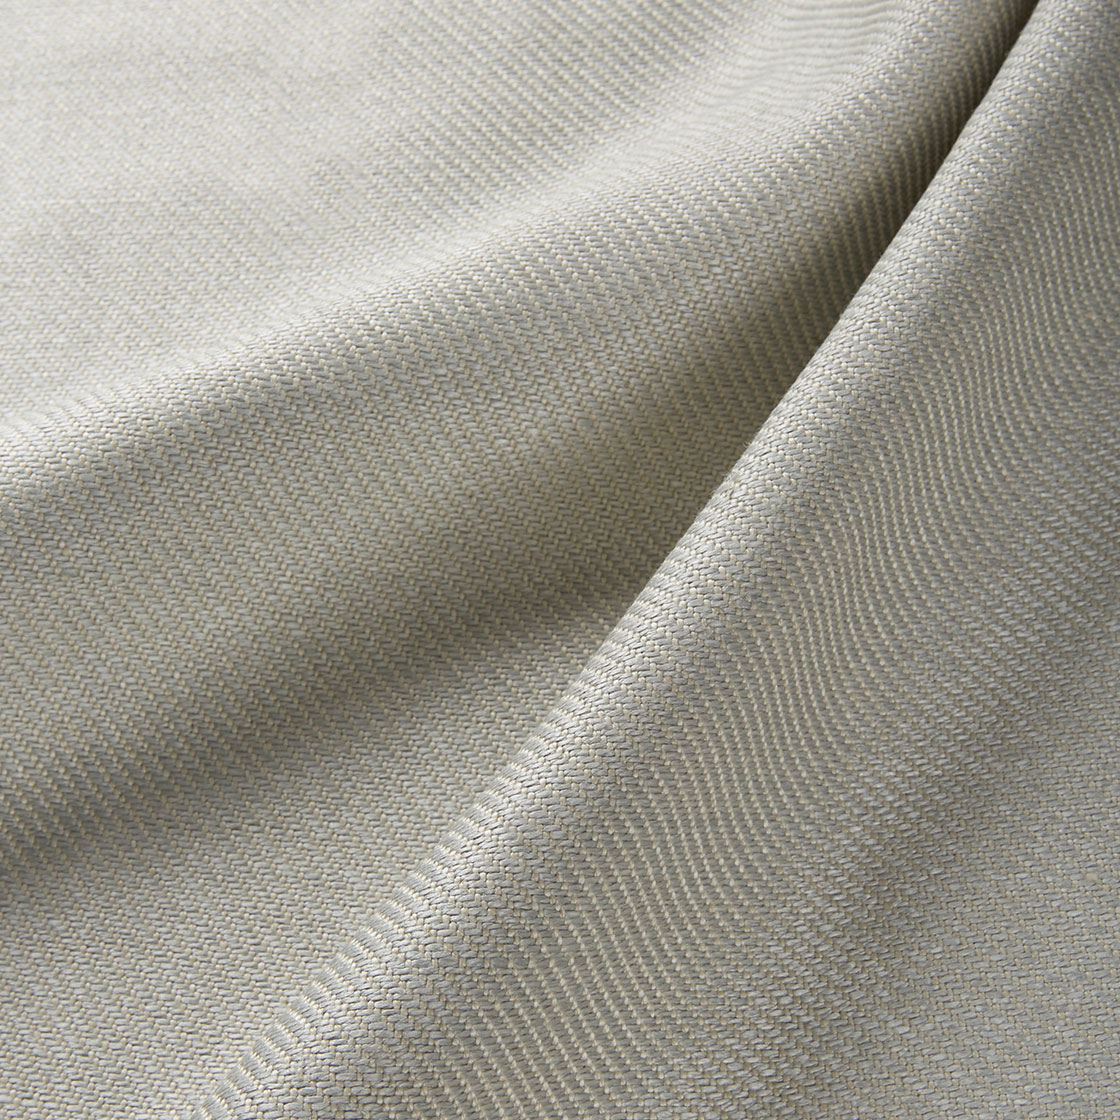 Novara Linen - Pearl Grey - Beaumont & Fletcher - Beaumont & Fletcher